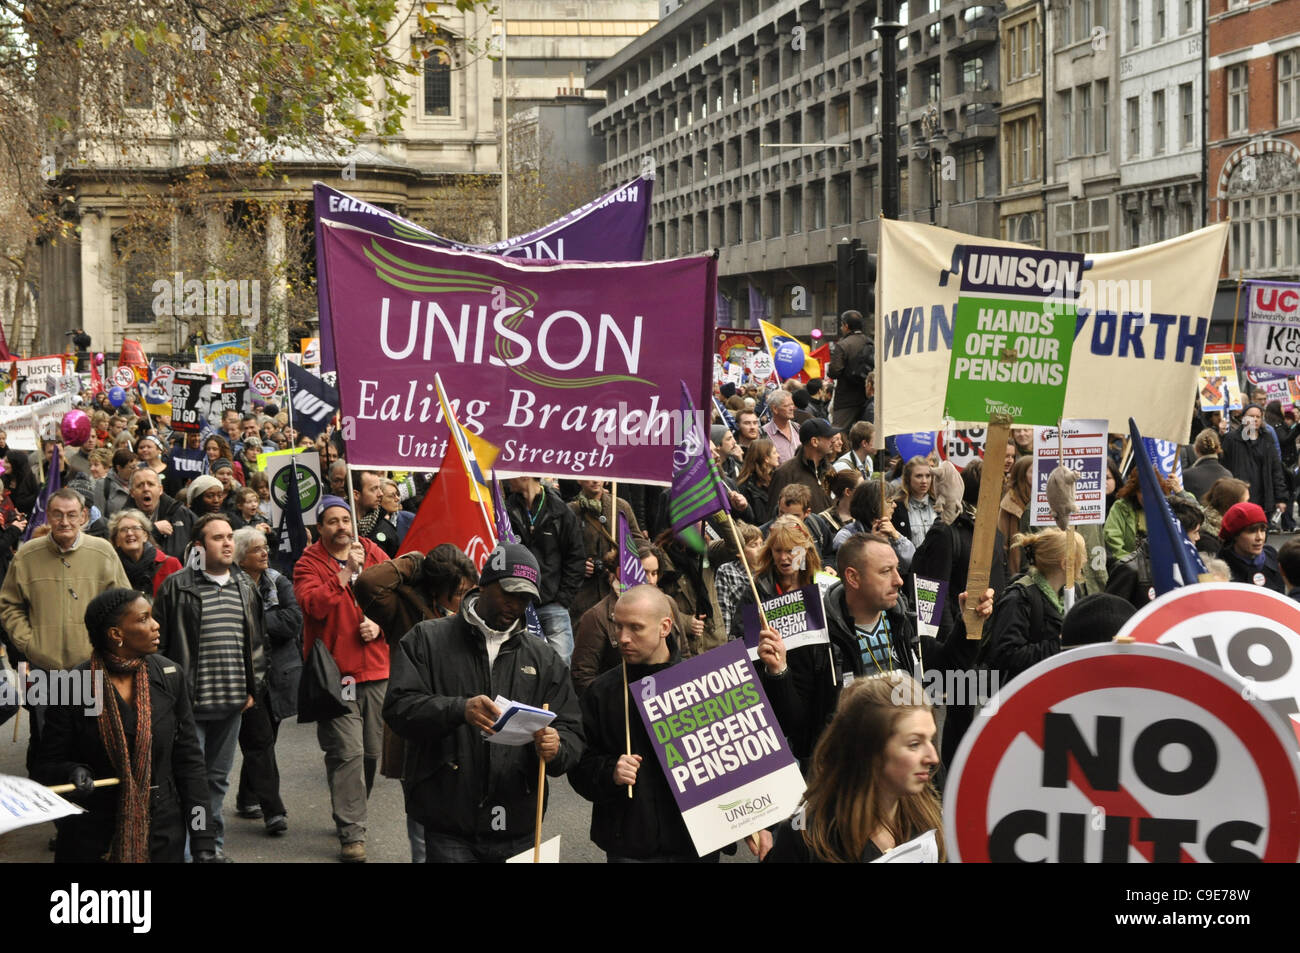 London, UK, 30/11/2011 Strikers march and protest against public sector cuts in London in one of the biggest industrial - Stock Image